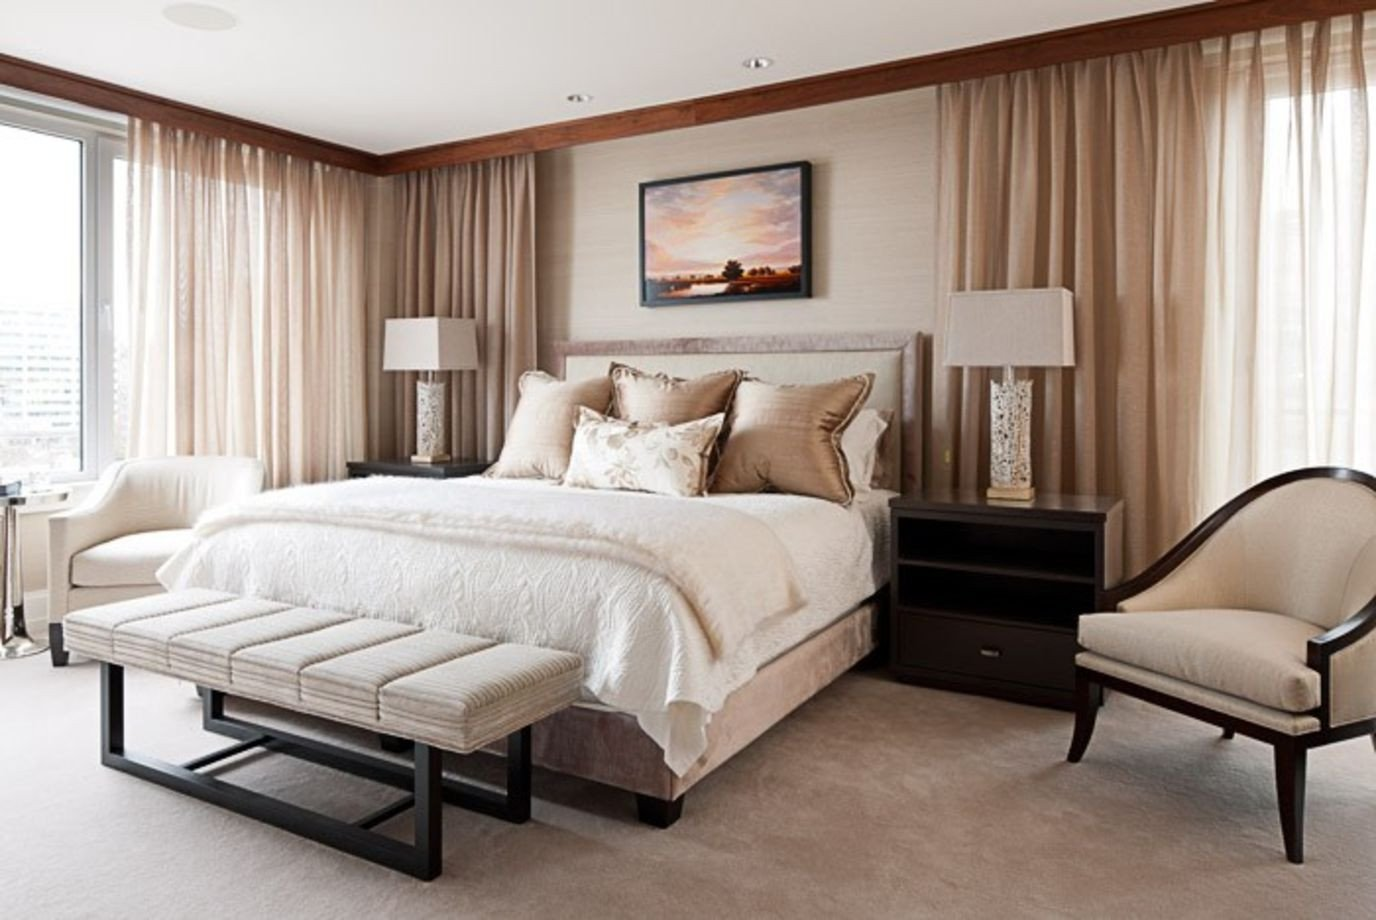 Master Bedroom with Fireplace Elegant Porch